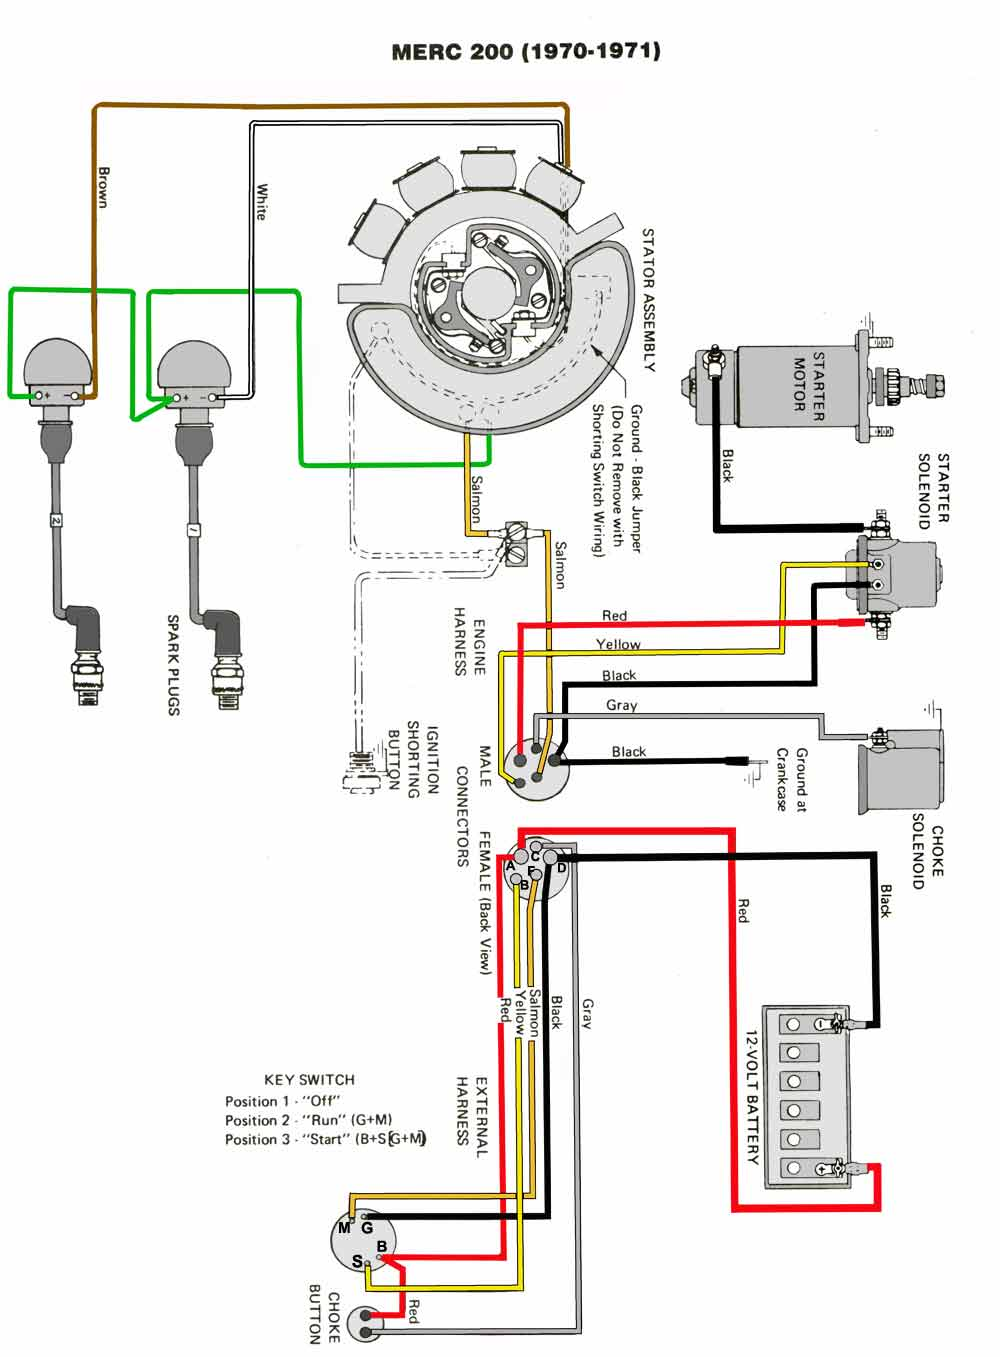 Mercury 400e 1960 Outboard Wiring Diagram - Wiring Block Diagram on chris craft wiring diagram, yamaha golf cart wiring diagram, yamaha road star wiring-diagram, yamaha wiring harness diagram, yamaha outboard diagnostic connector, smoker craft wiring diagram, yamaha outboard exhaust system, johnson outboard wiring diagram, sea hunt wiring diagram, tohatsu outboard wiring diagram, bennington wiring diagram, snowmobile wiring diagram, yamaha 703 remote control wiring diagram, yamaha gas wiring diagram, outboard starter wiring diagram, yamaha outboard relay, 1996 f150 fuel diagram, yamaha generator wiring diagram, yamaha tachometer 6y5-8350t-83-00, dexter wiring diagram,